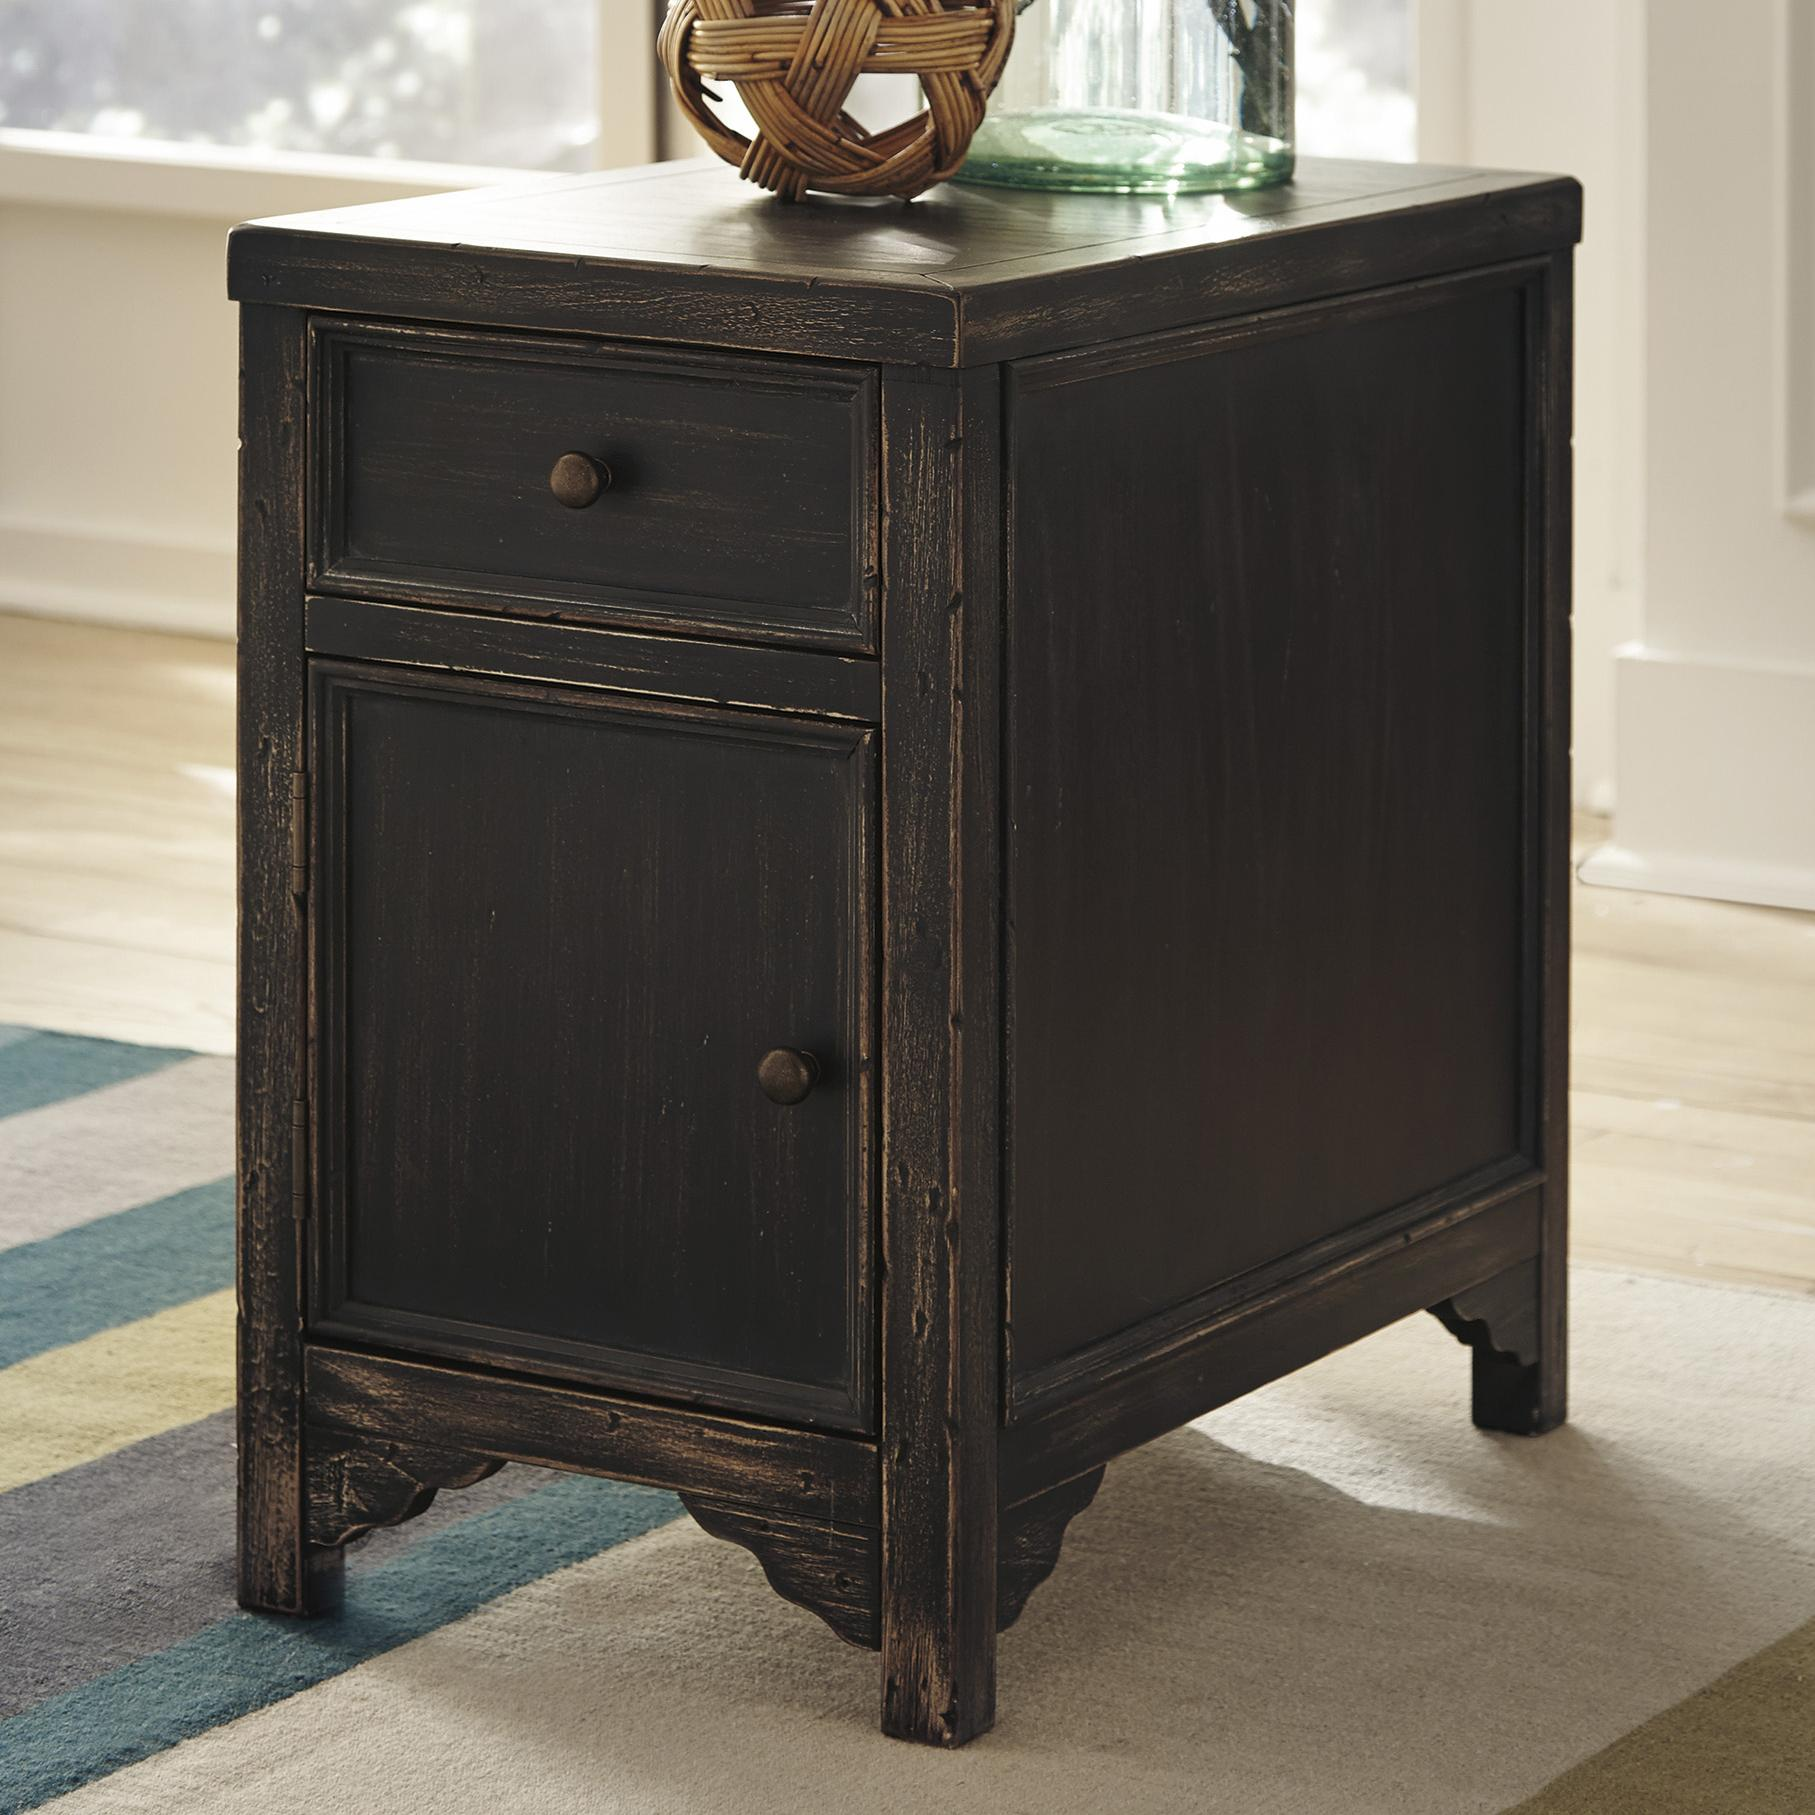 signature design ashley gavelston distressed chair side end table products color black accent cabinet ethan allen furniture dubai oval glass collection inch deep console pillows